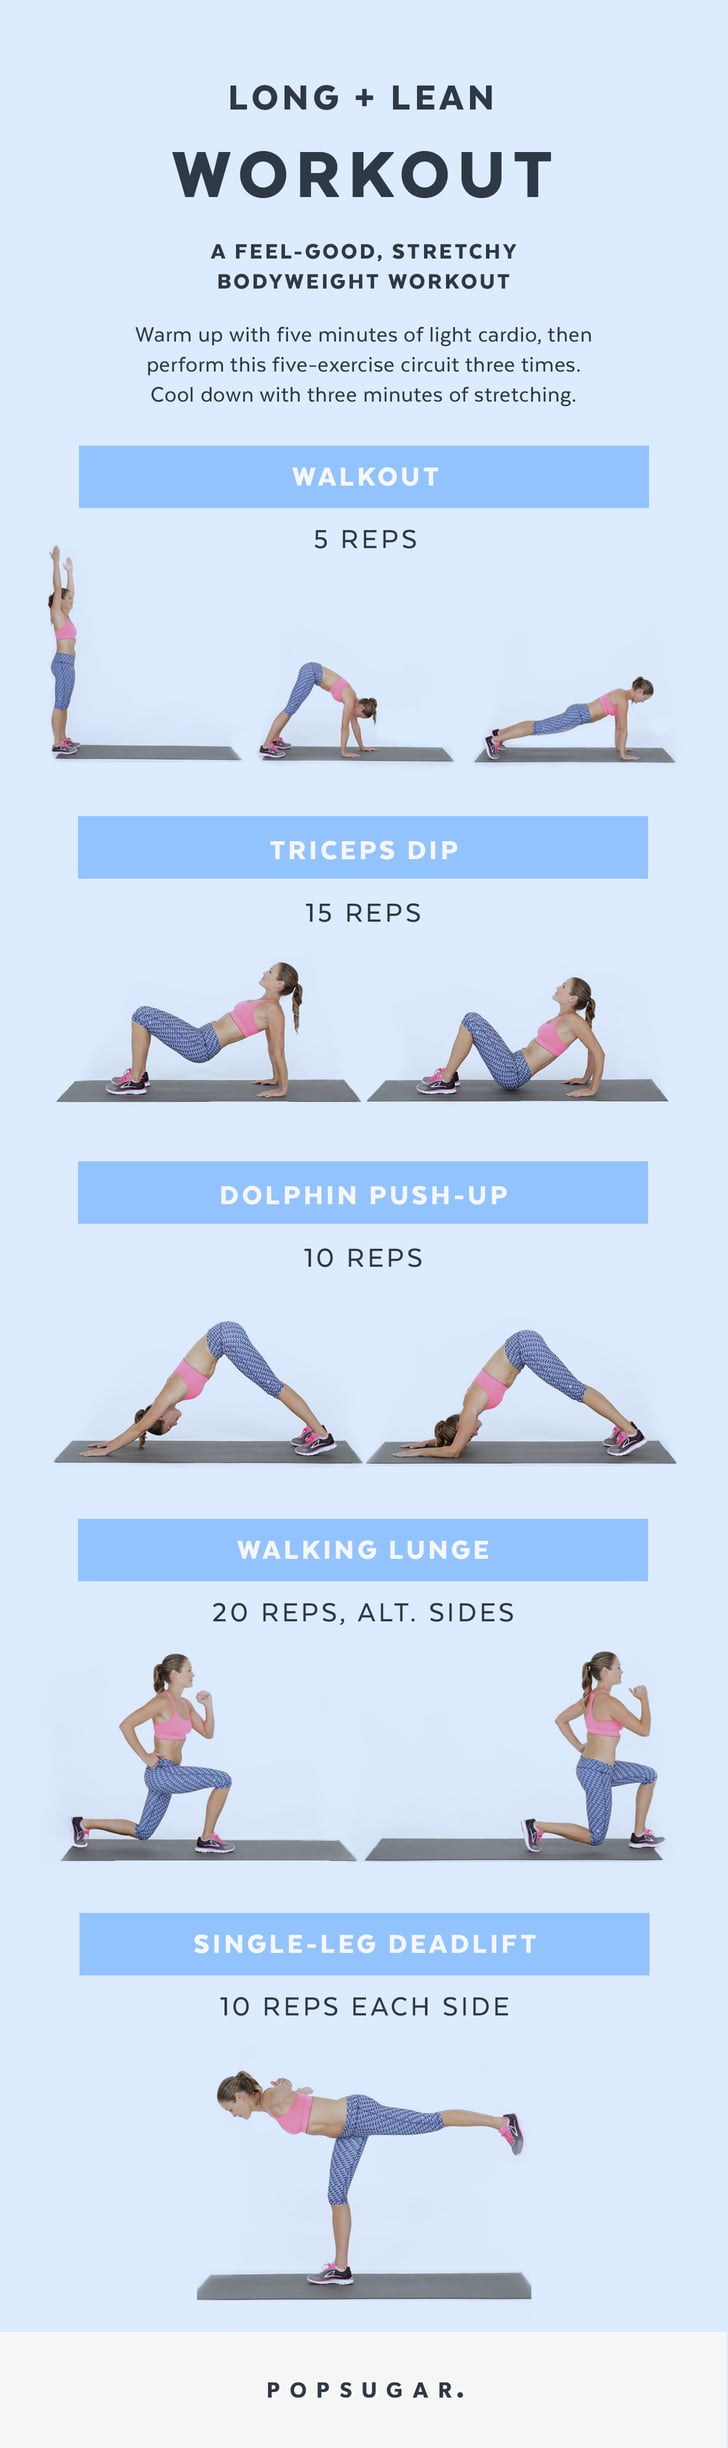 This is a graphic of Printable Workouts at Home in weight loss